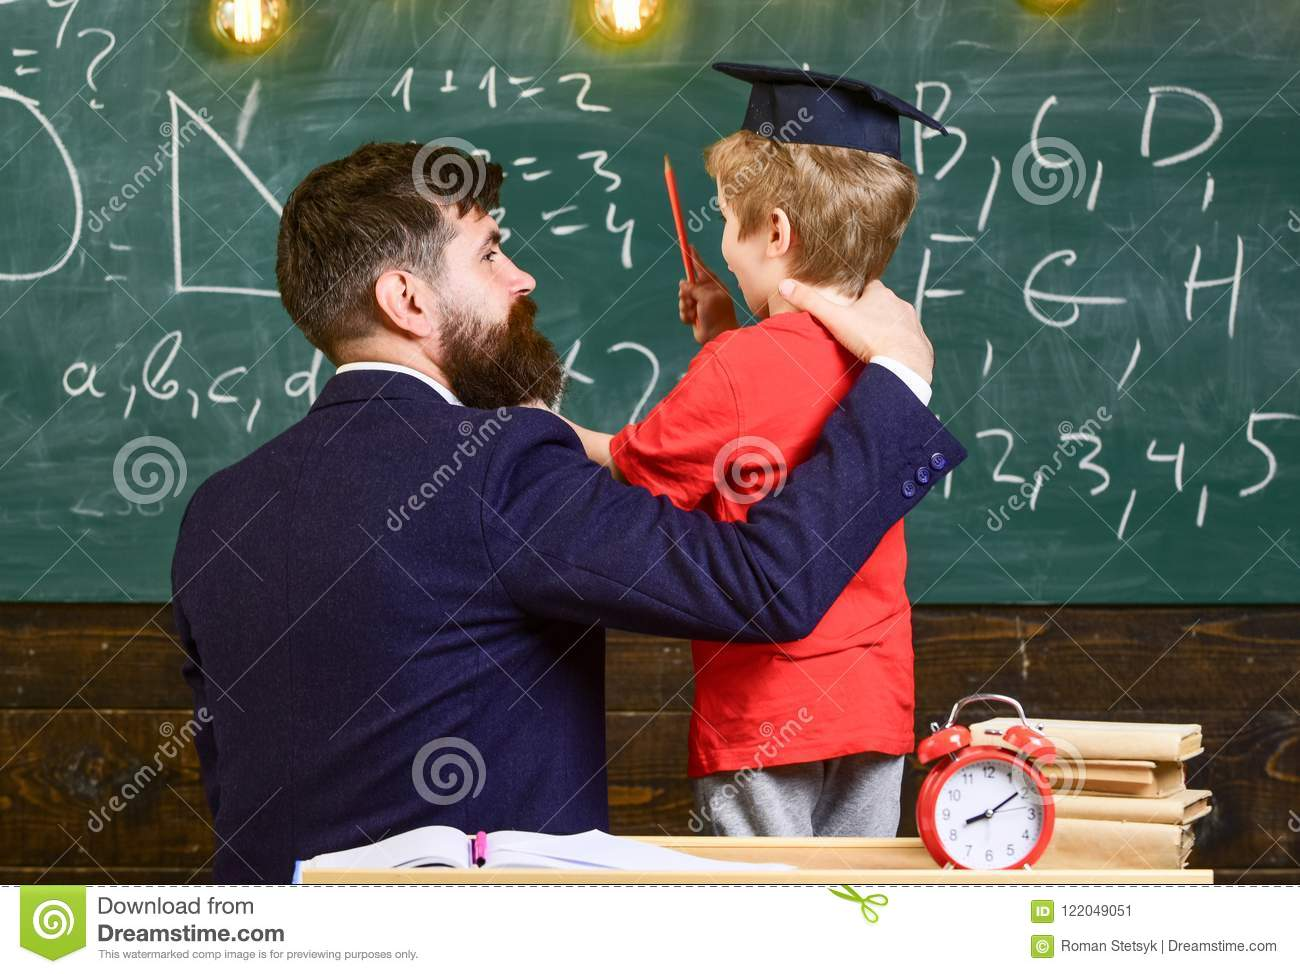 Best friends concept. Teacher with beard, father hugs little son in classroom while discussing, chalkboard on background